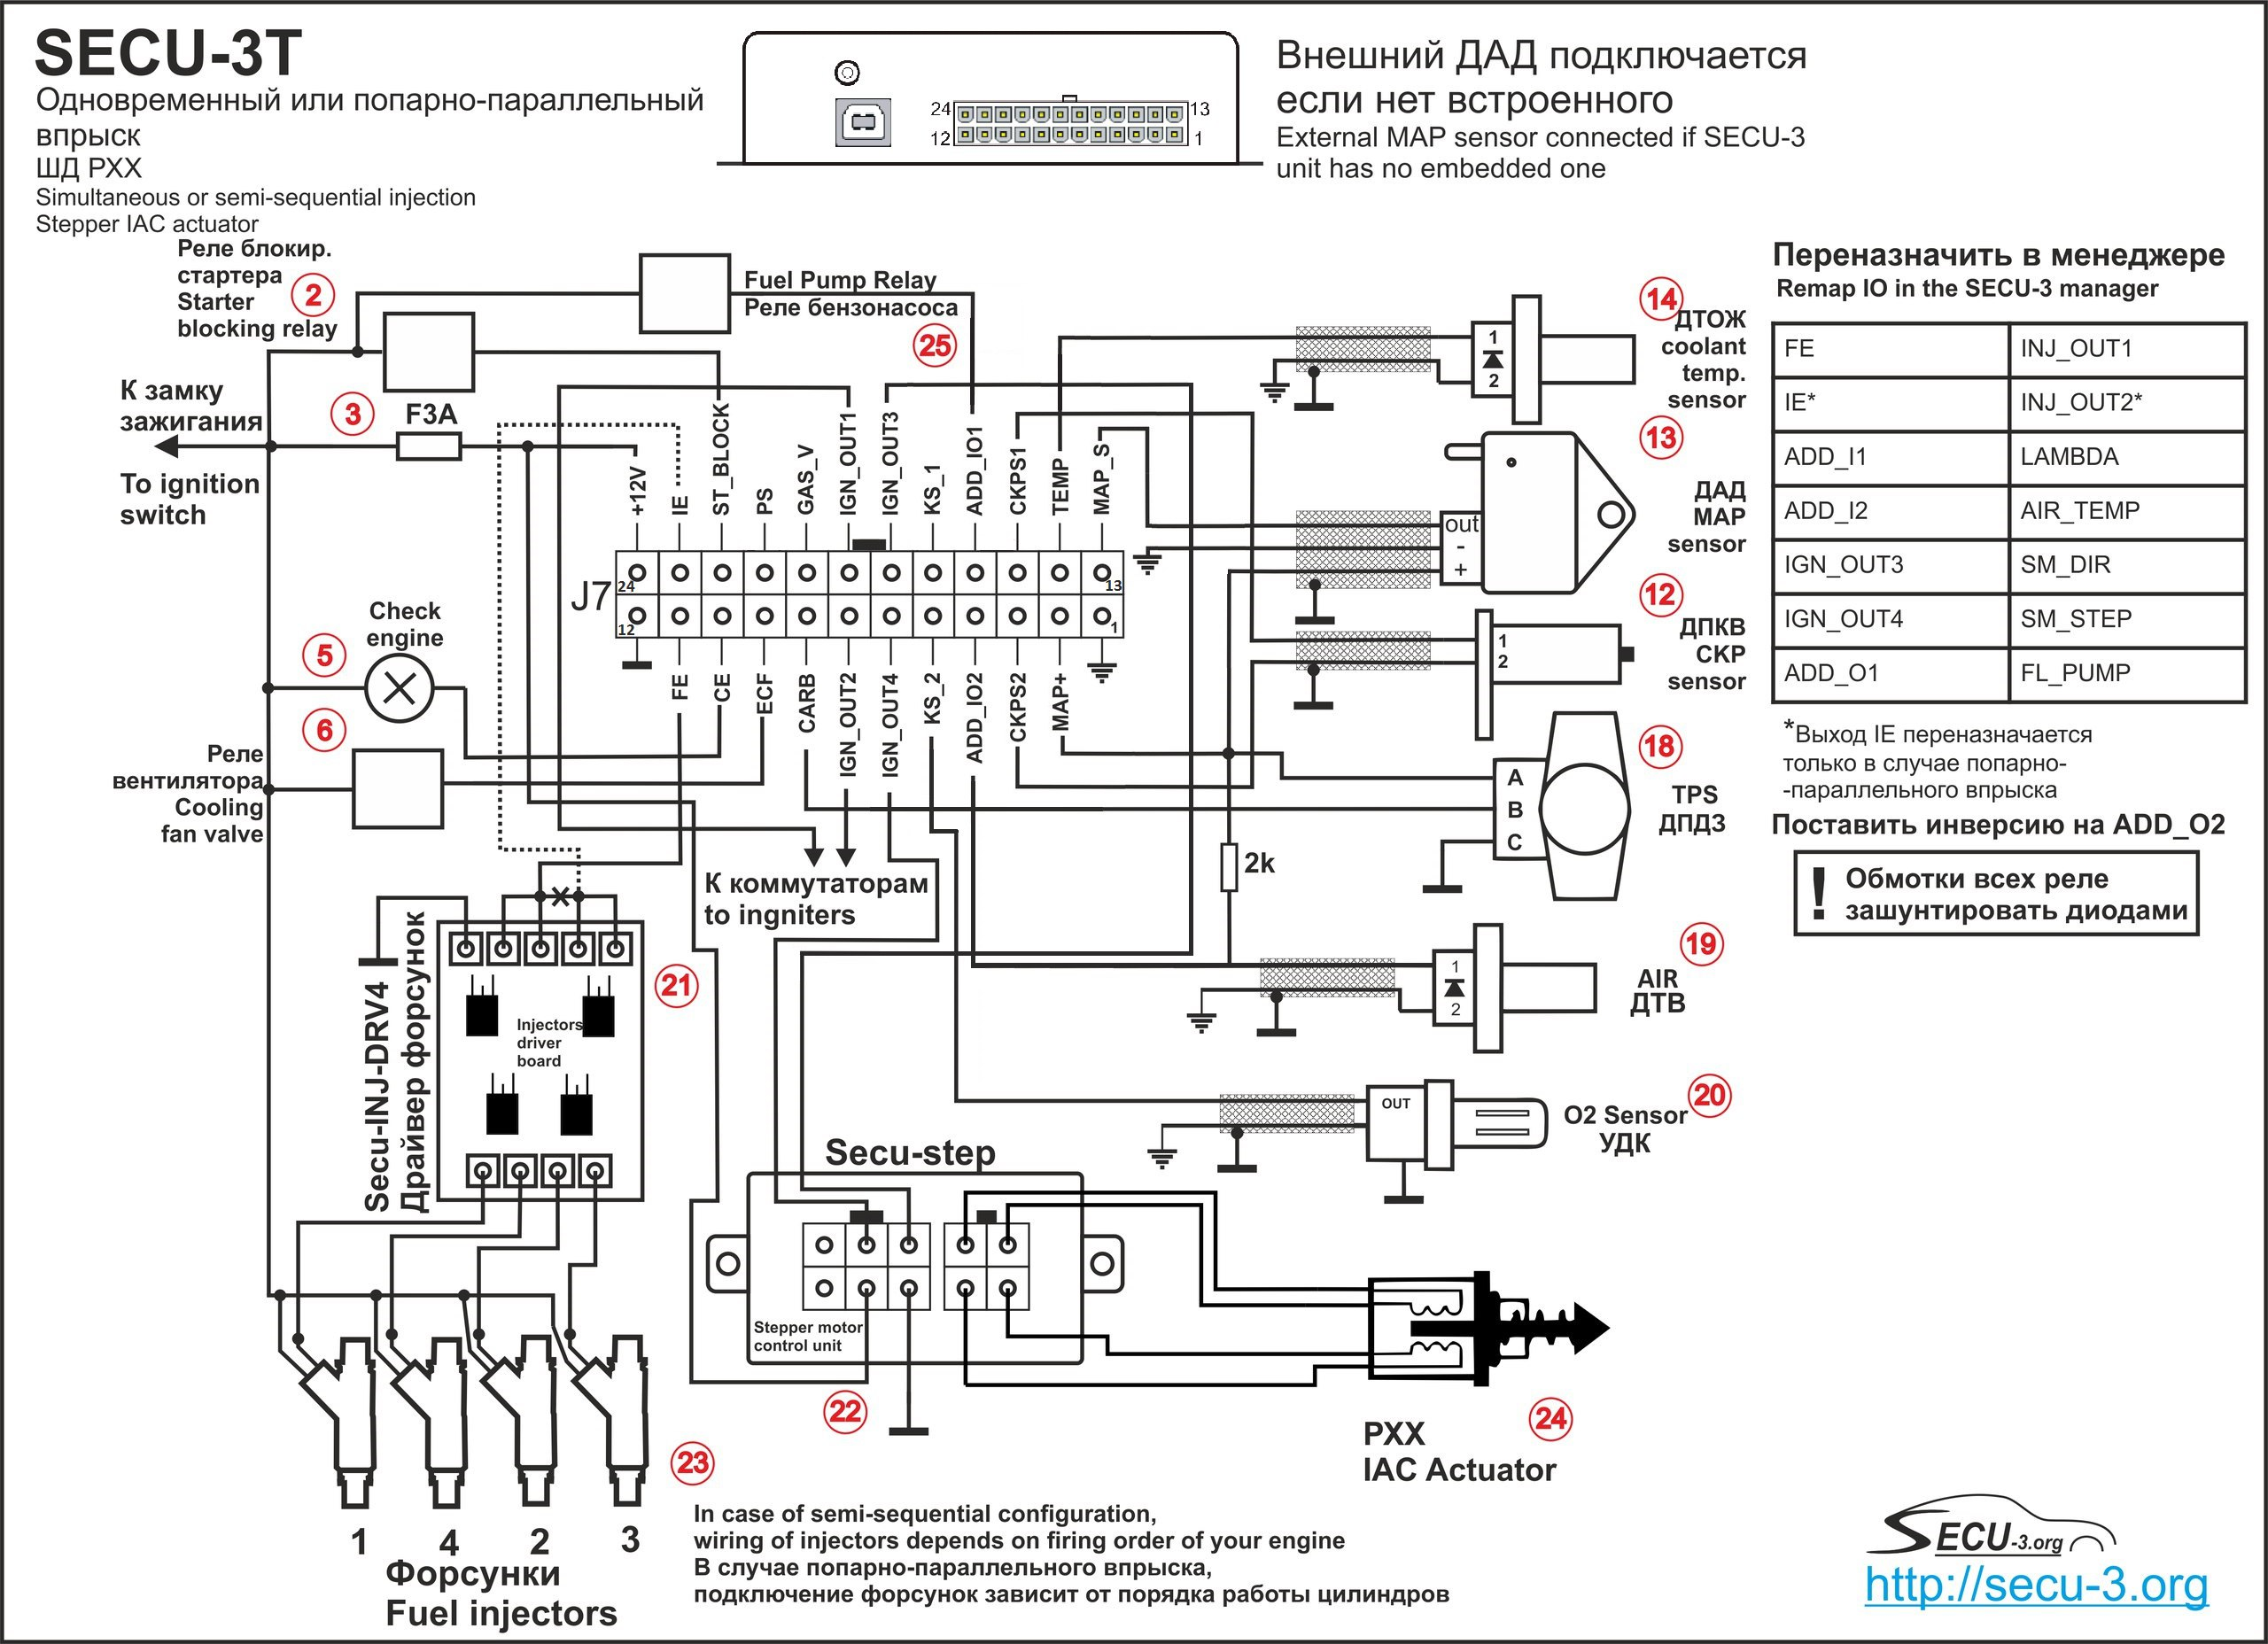 Wiring Diagrams For Secu 3t 24 Pins Connector